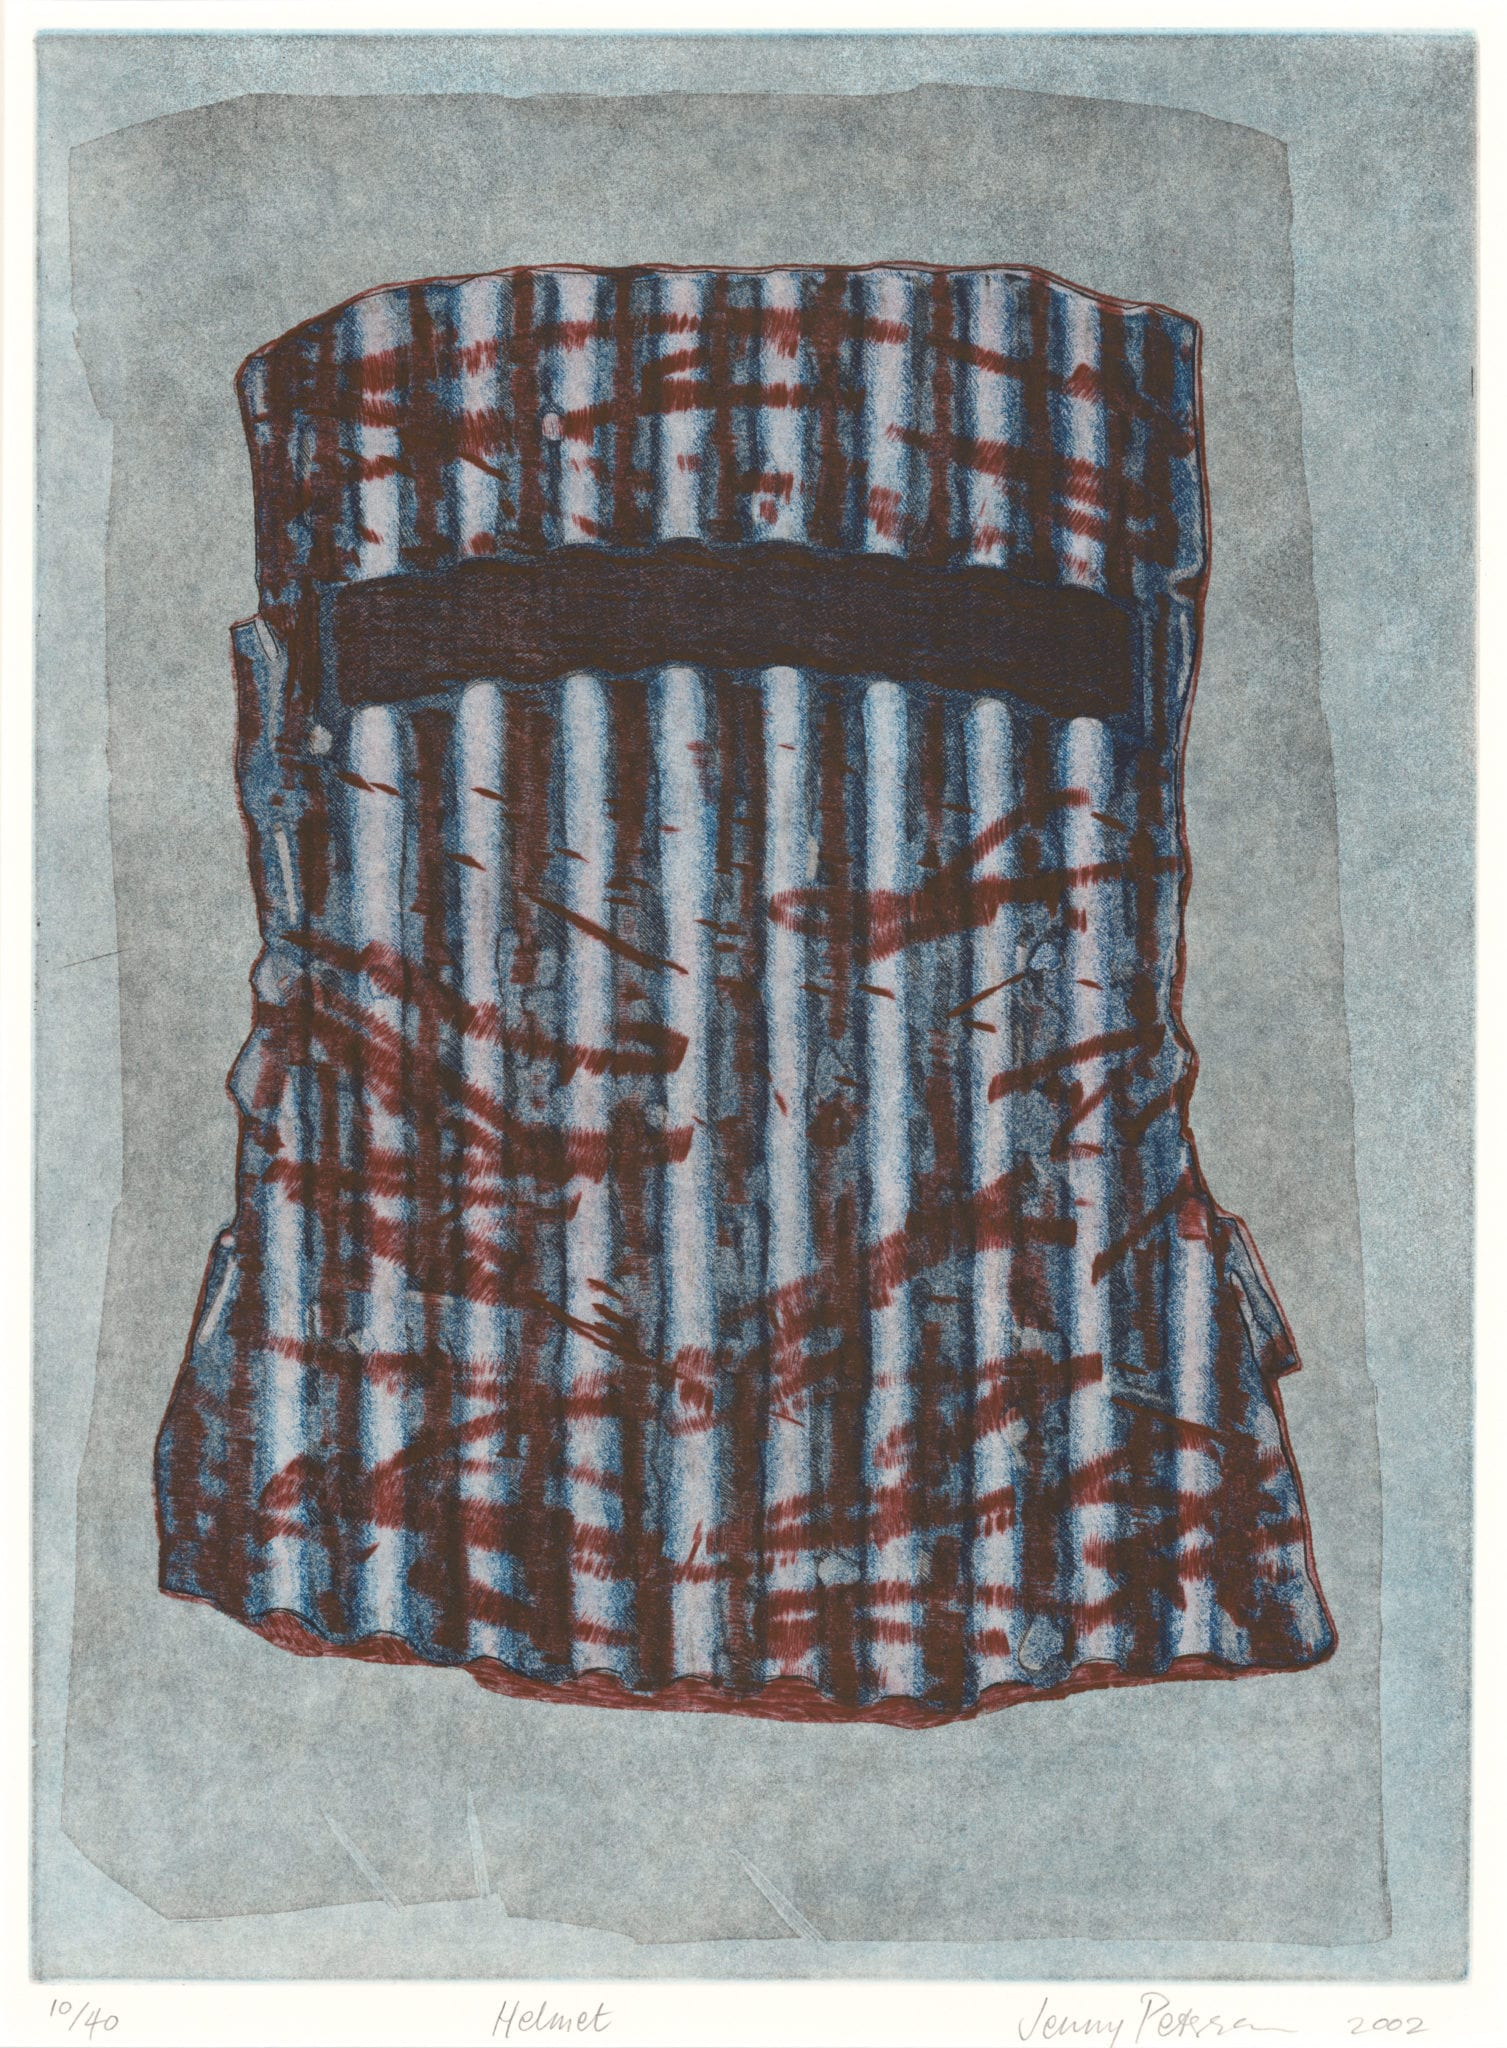 Jenny Peterson, Helmet, 2002, Etching and Aquatint, 55 x 40 cm, Latrobe Regional Gallery Collection, Acquired 2002